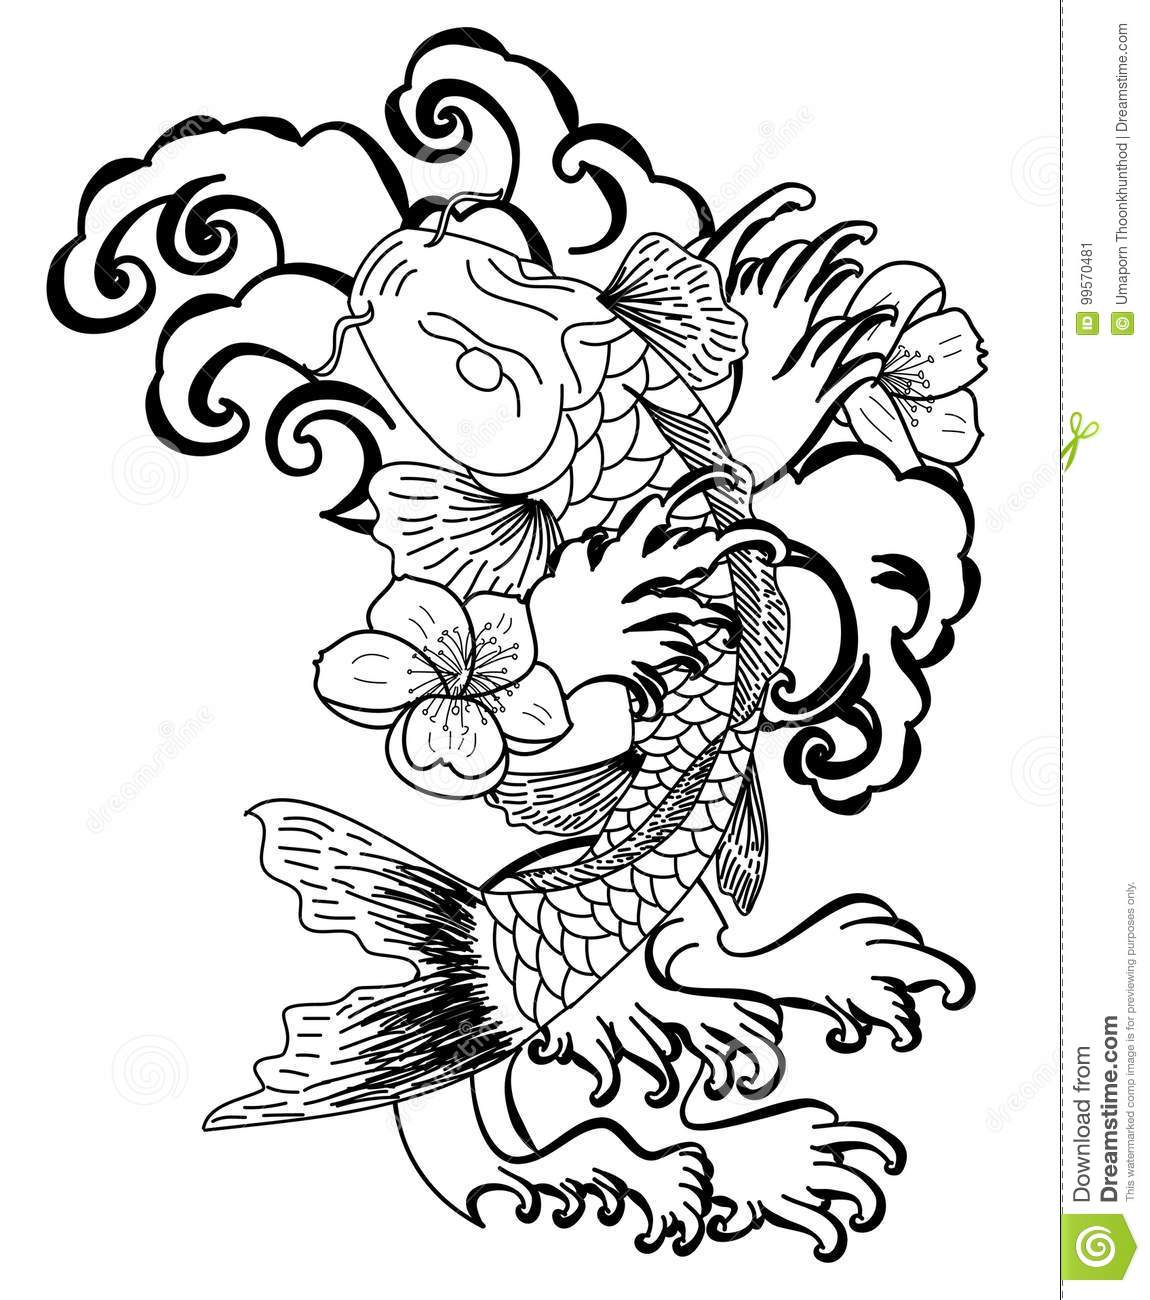 Koi Fish With Flower And Japanese Cloud Tattoo Design